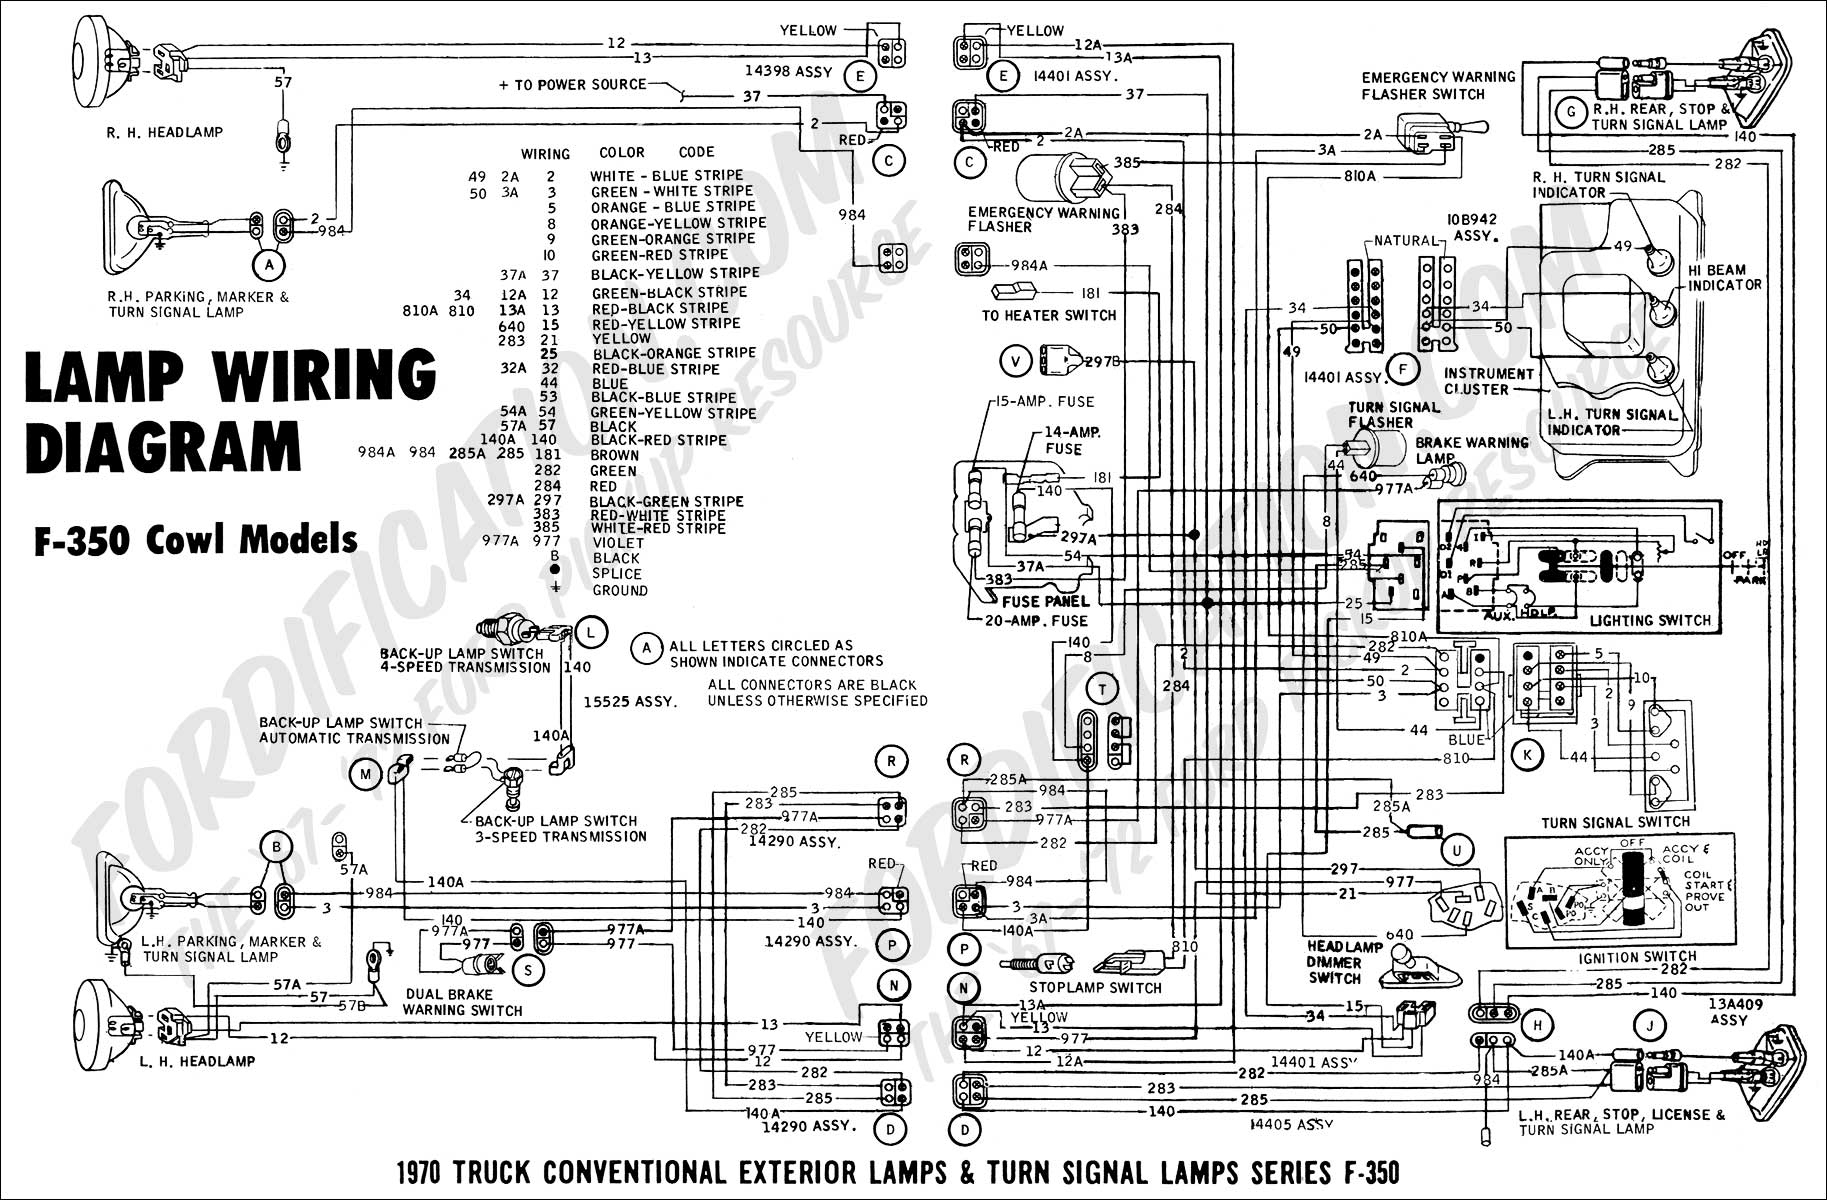 F350 Wiring Diagram - Wiring Diagrams Hubs - 2002 Ford F250 Trailer Wiring Diagram